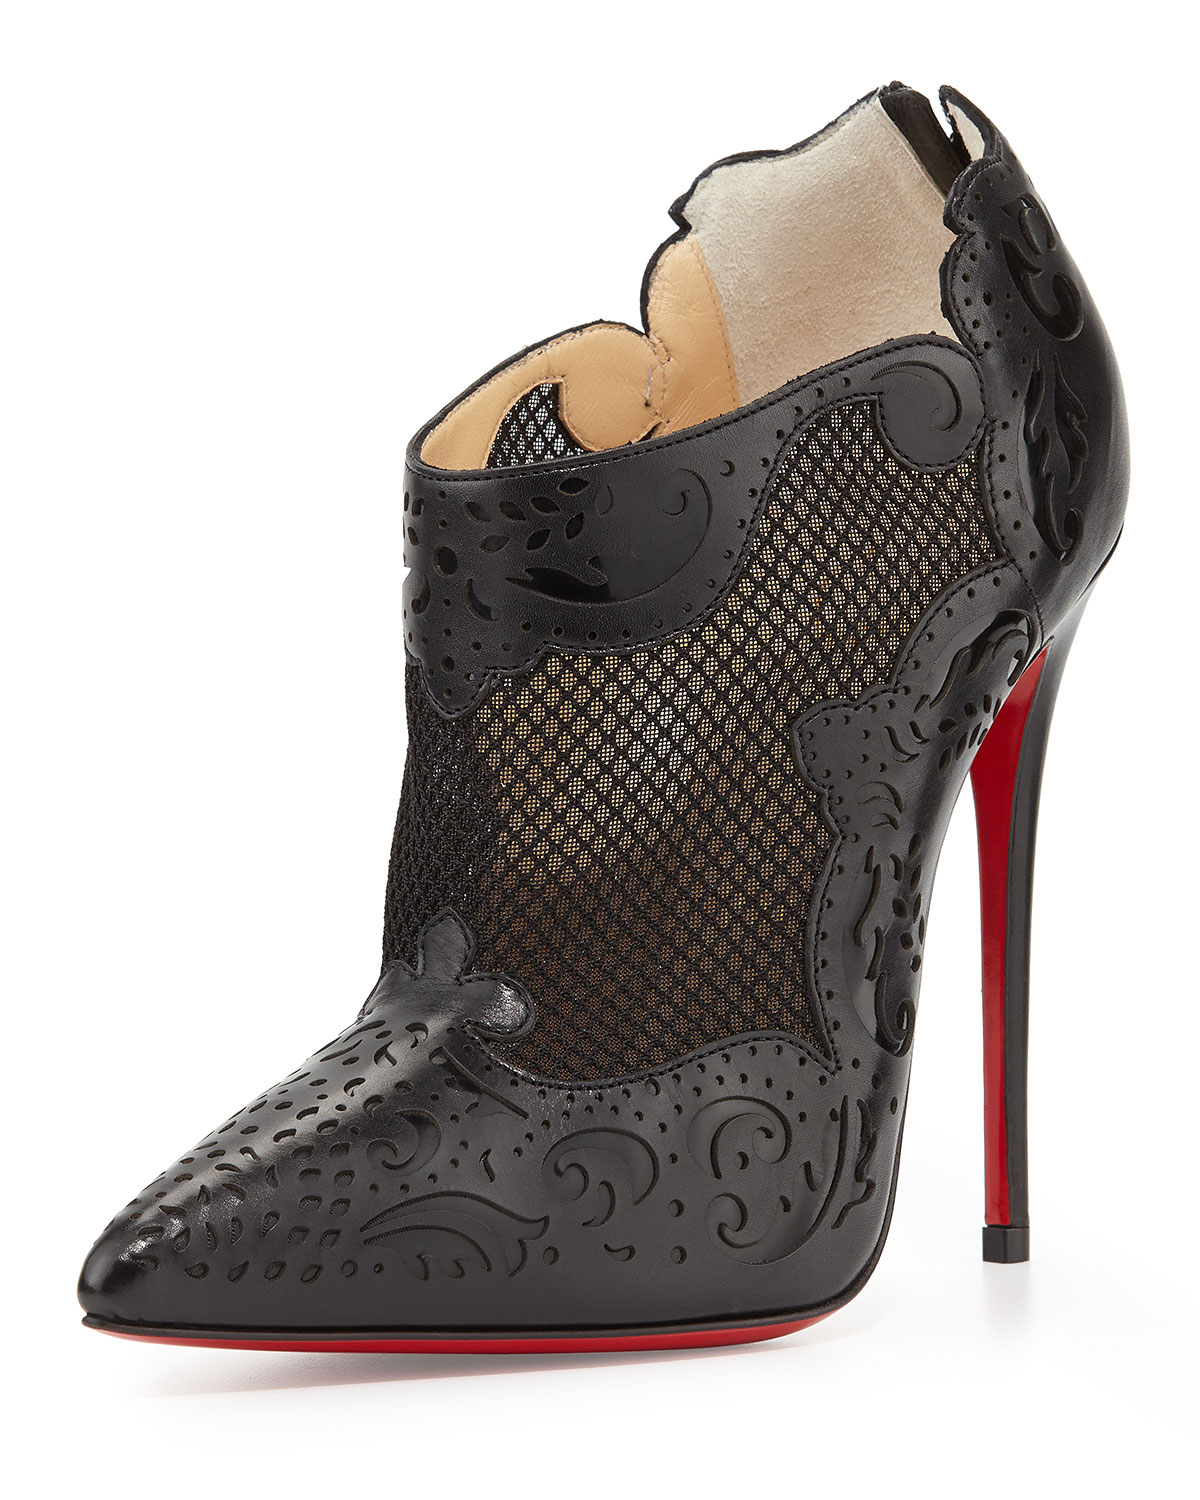 Christian louboutin Mandolina Laser-Cut Mesh Red Sole Bootie in ...